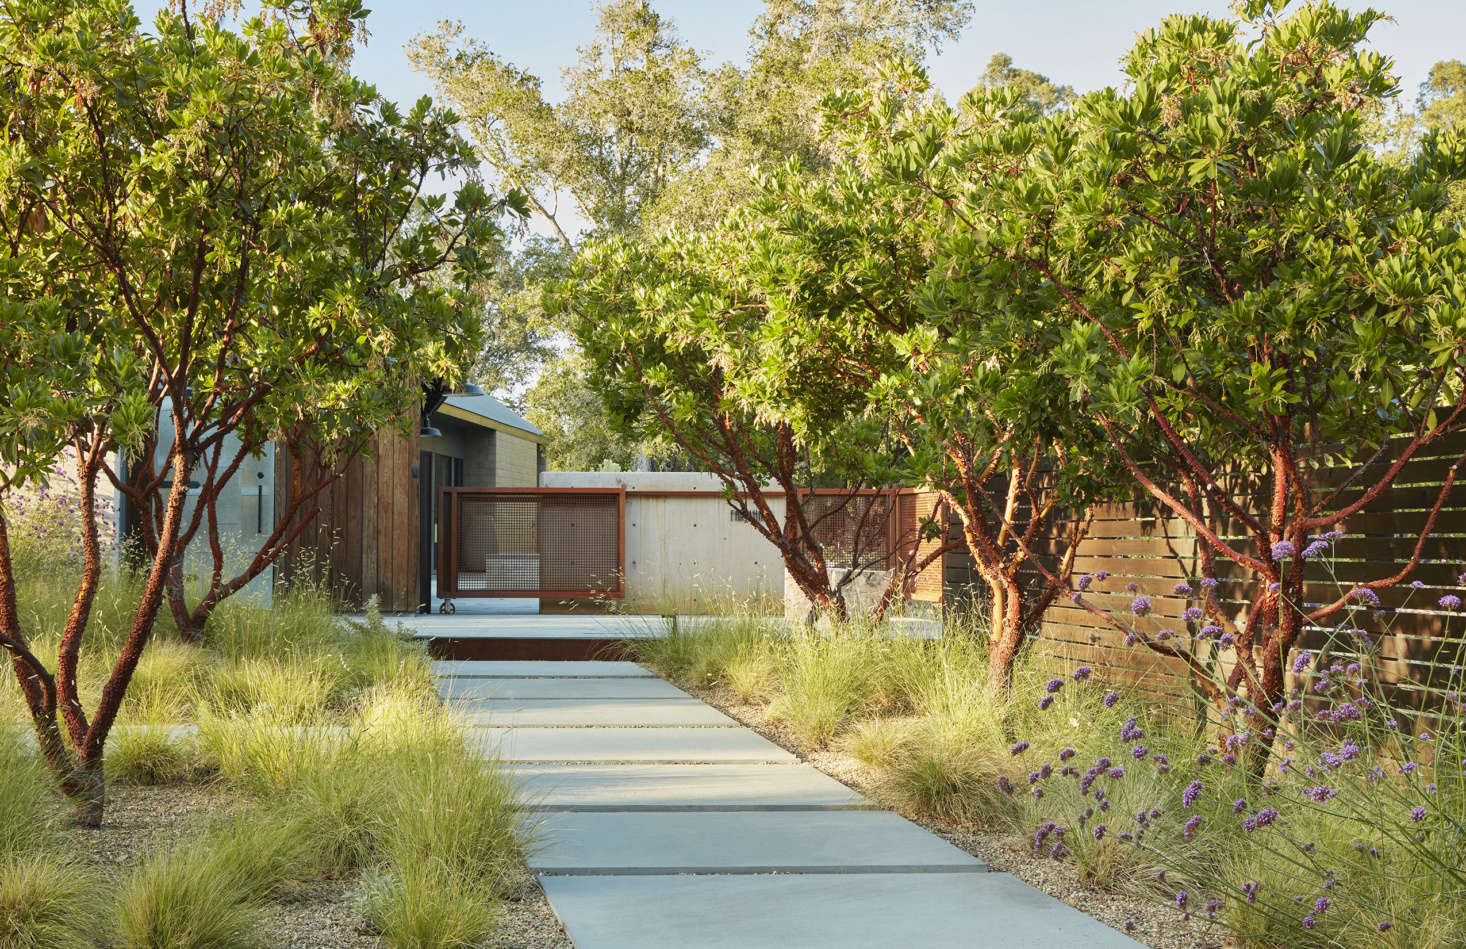 A stone pathway leads to the front gate. Along the sides are soft grasses and Arbutus 'Marina' trees.